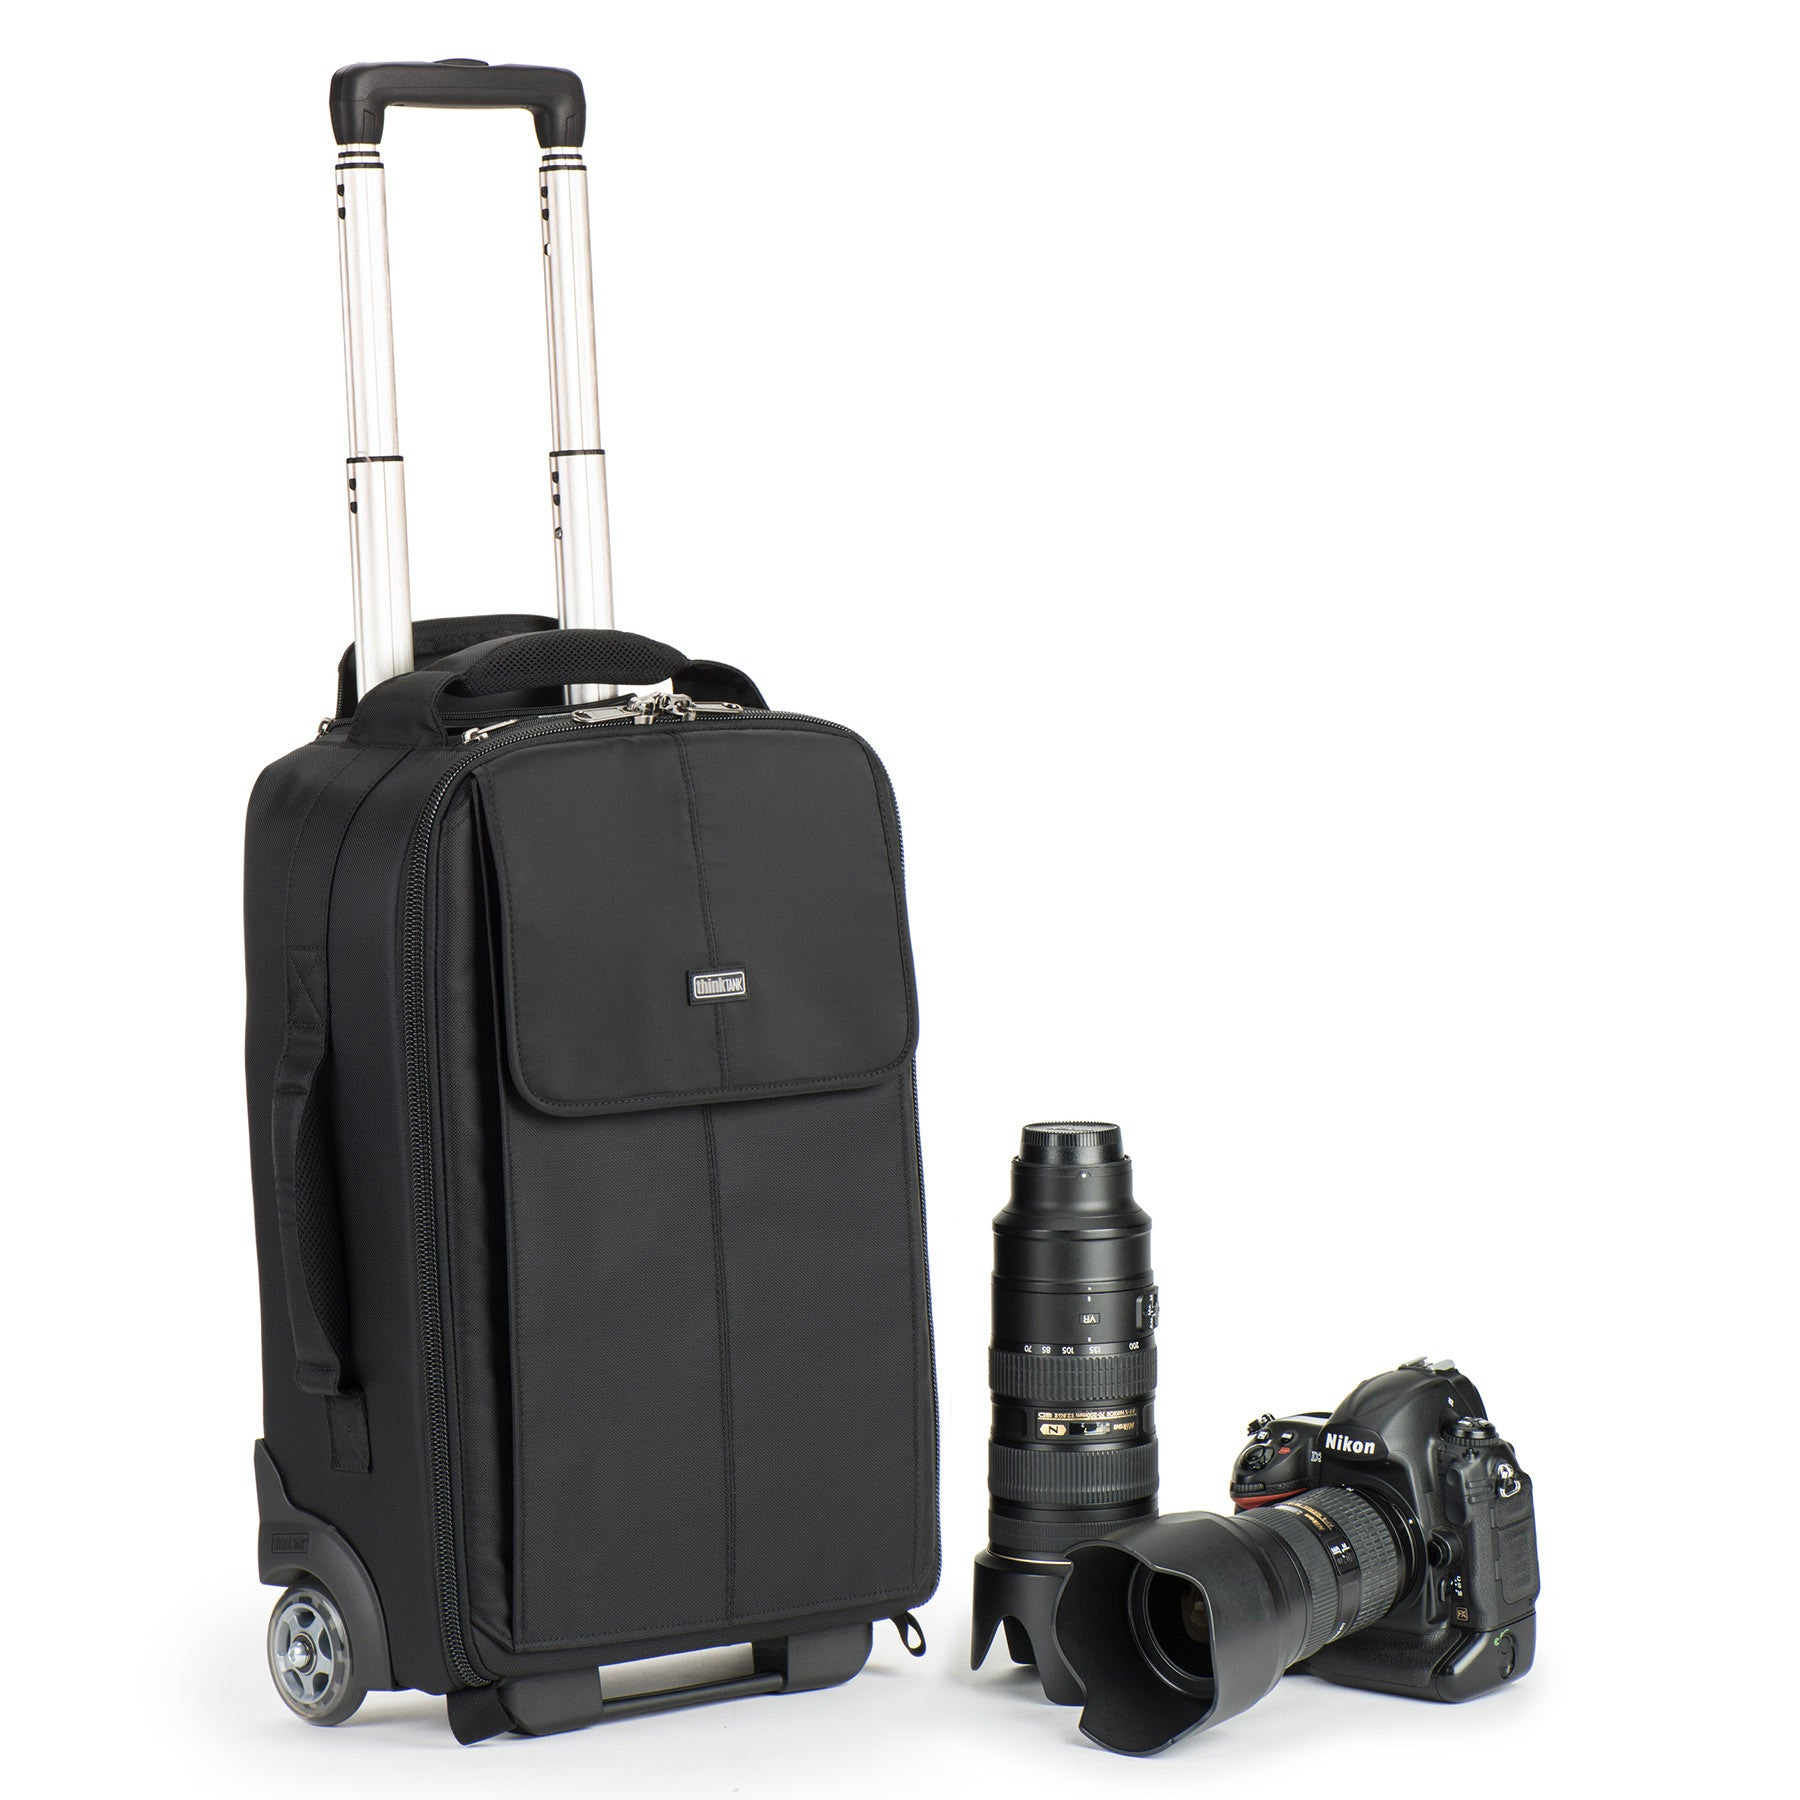 Specially designed interior to maximize gear for carry on for small aircraft such as commuter and regional jets. Meets U.S. and international airline carry on requirements